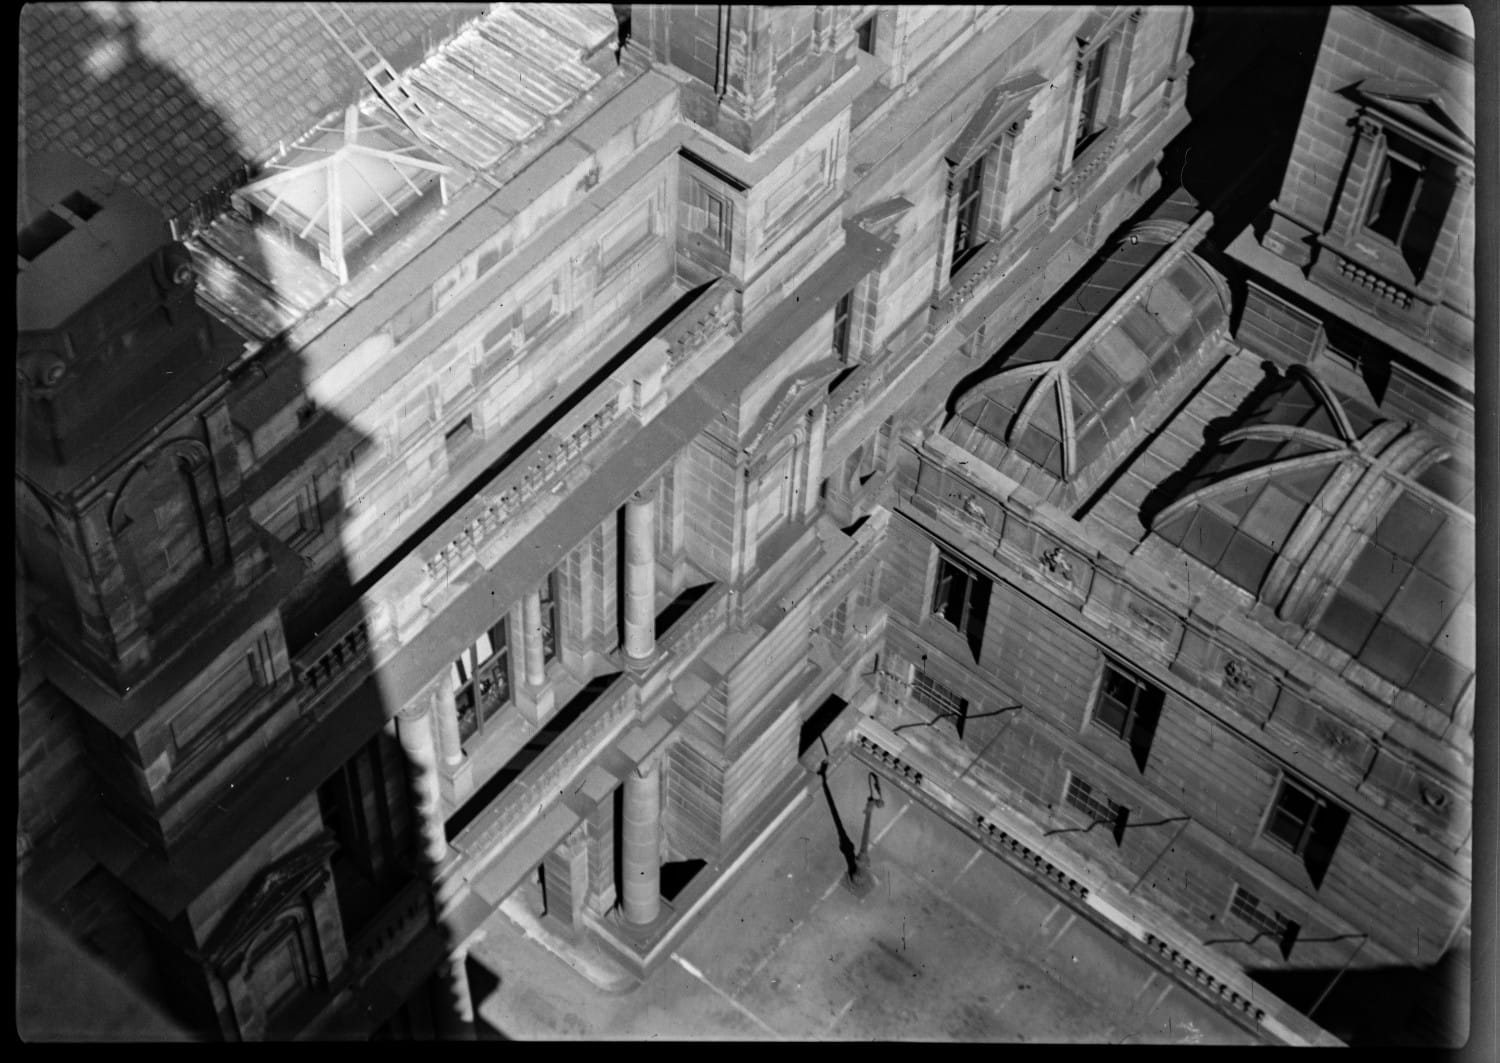 Looking down into the central courtyard